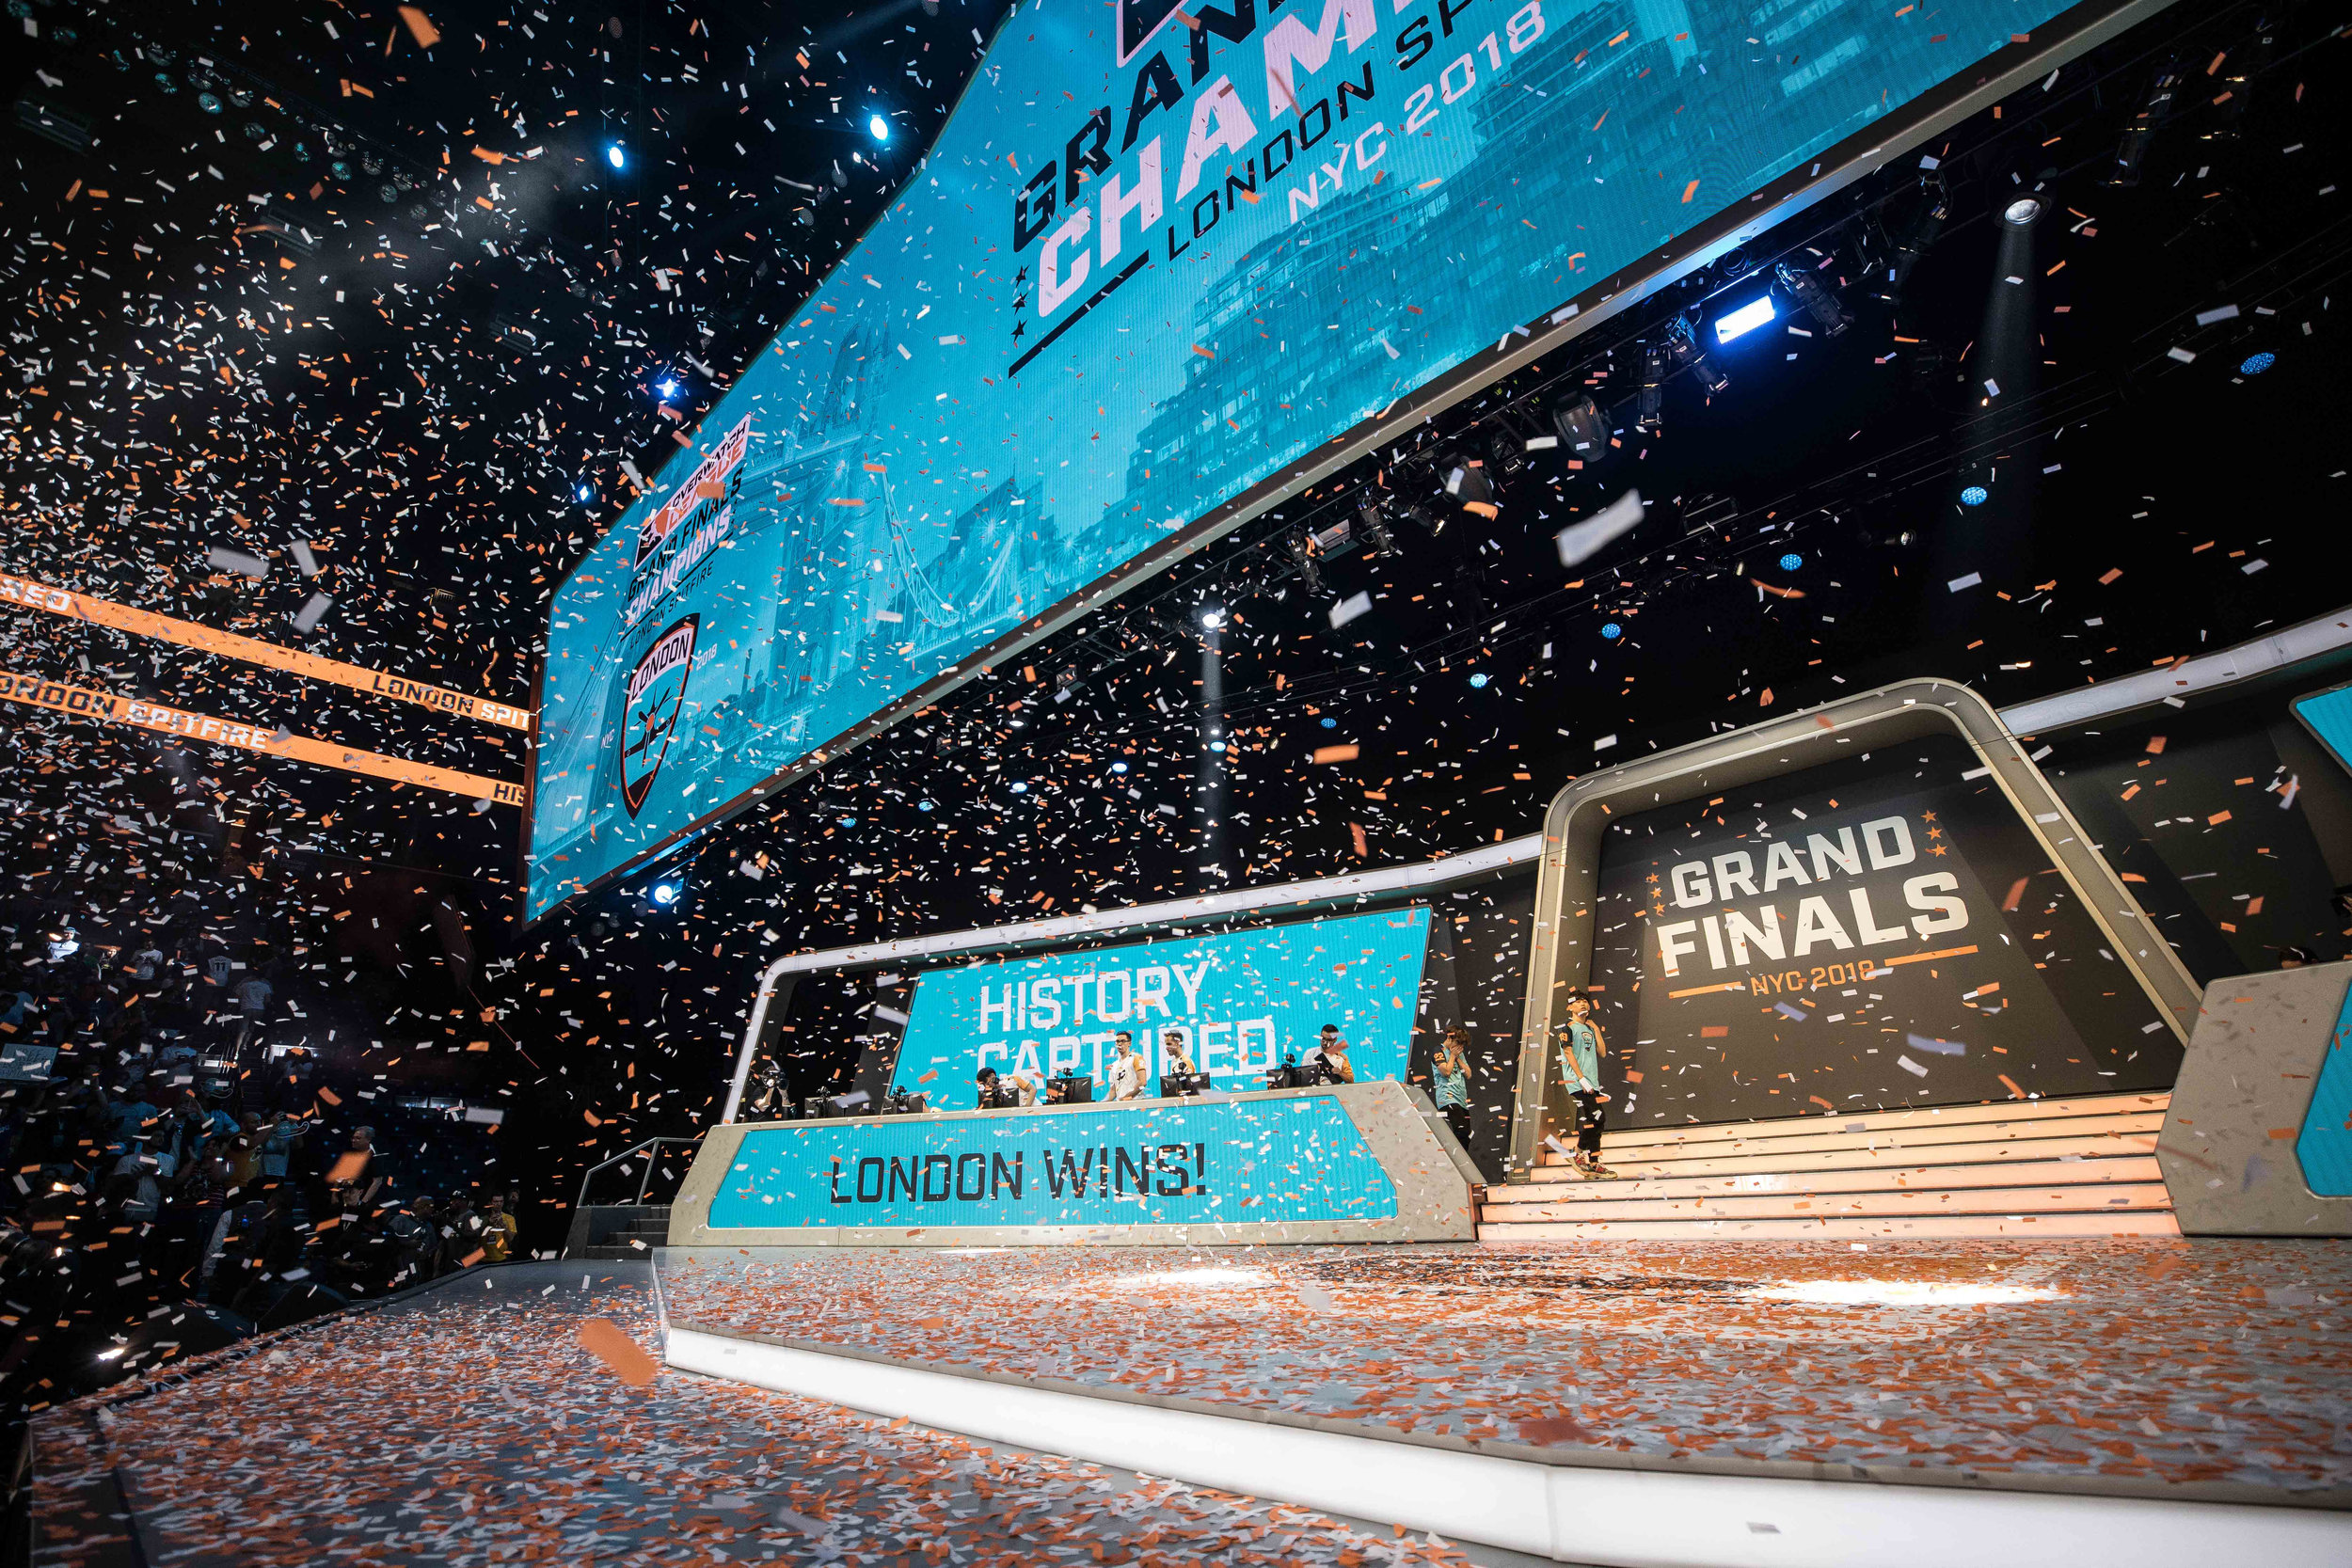 Overwatch League Grand Finals, celebrating London Spitfire'u2019s championship win onstage with players and confetti at Barclays Center on July 27, 2018 in Brooklyn, New York.  Photo by Hannah Smith / ESPAT Media